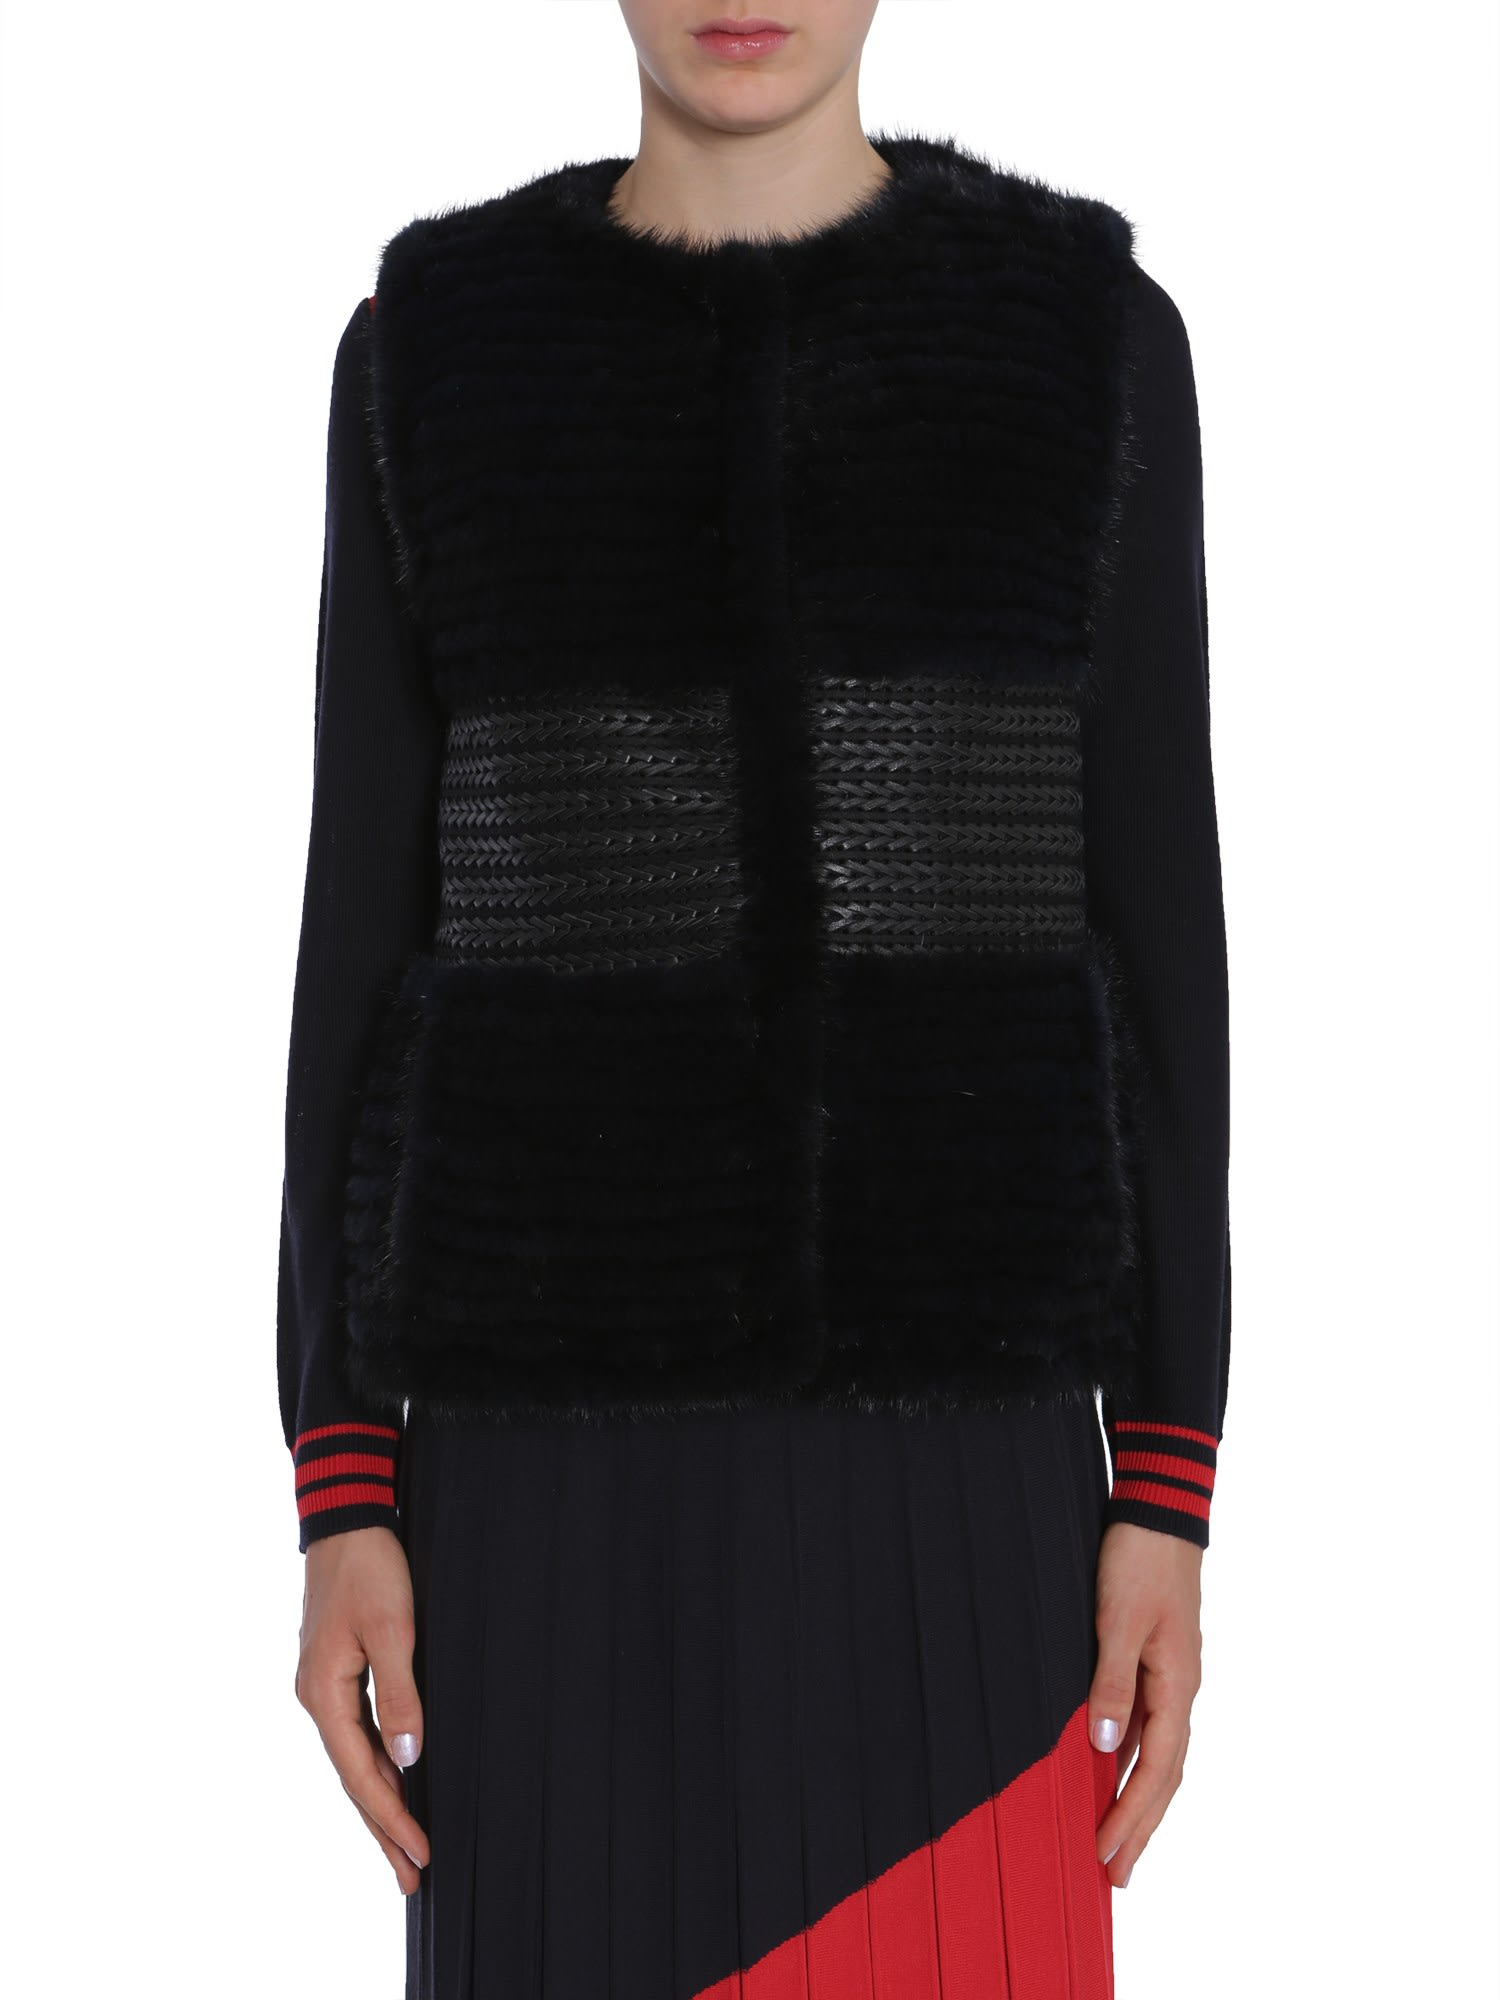 Tory Burch Roxanna Fur Jacket